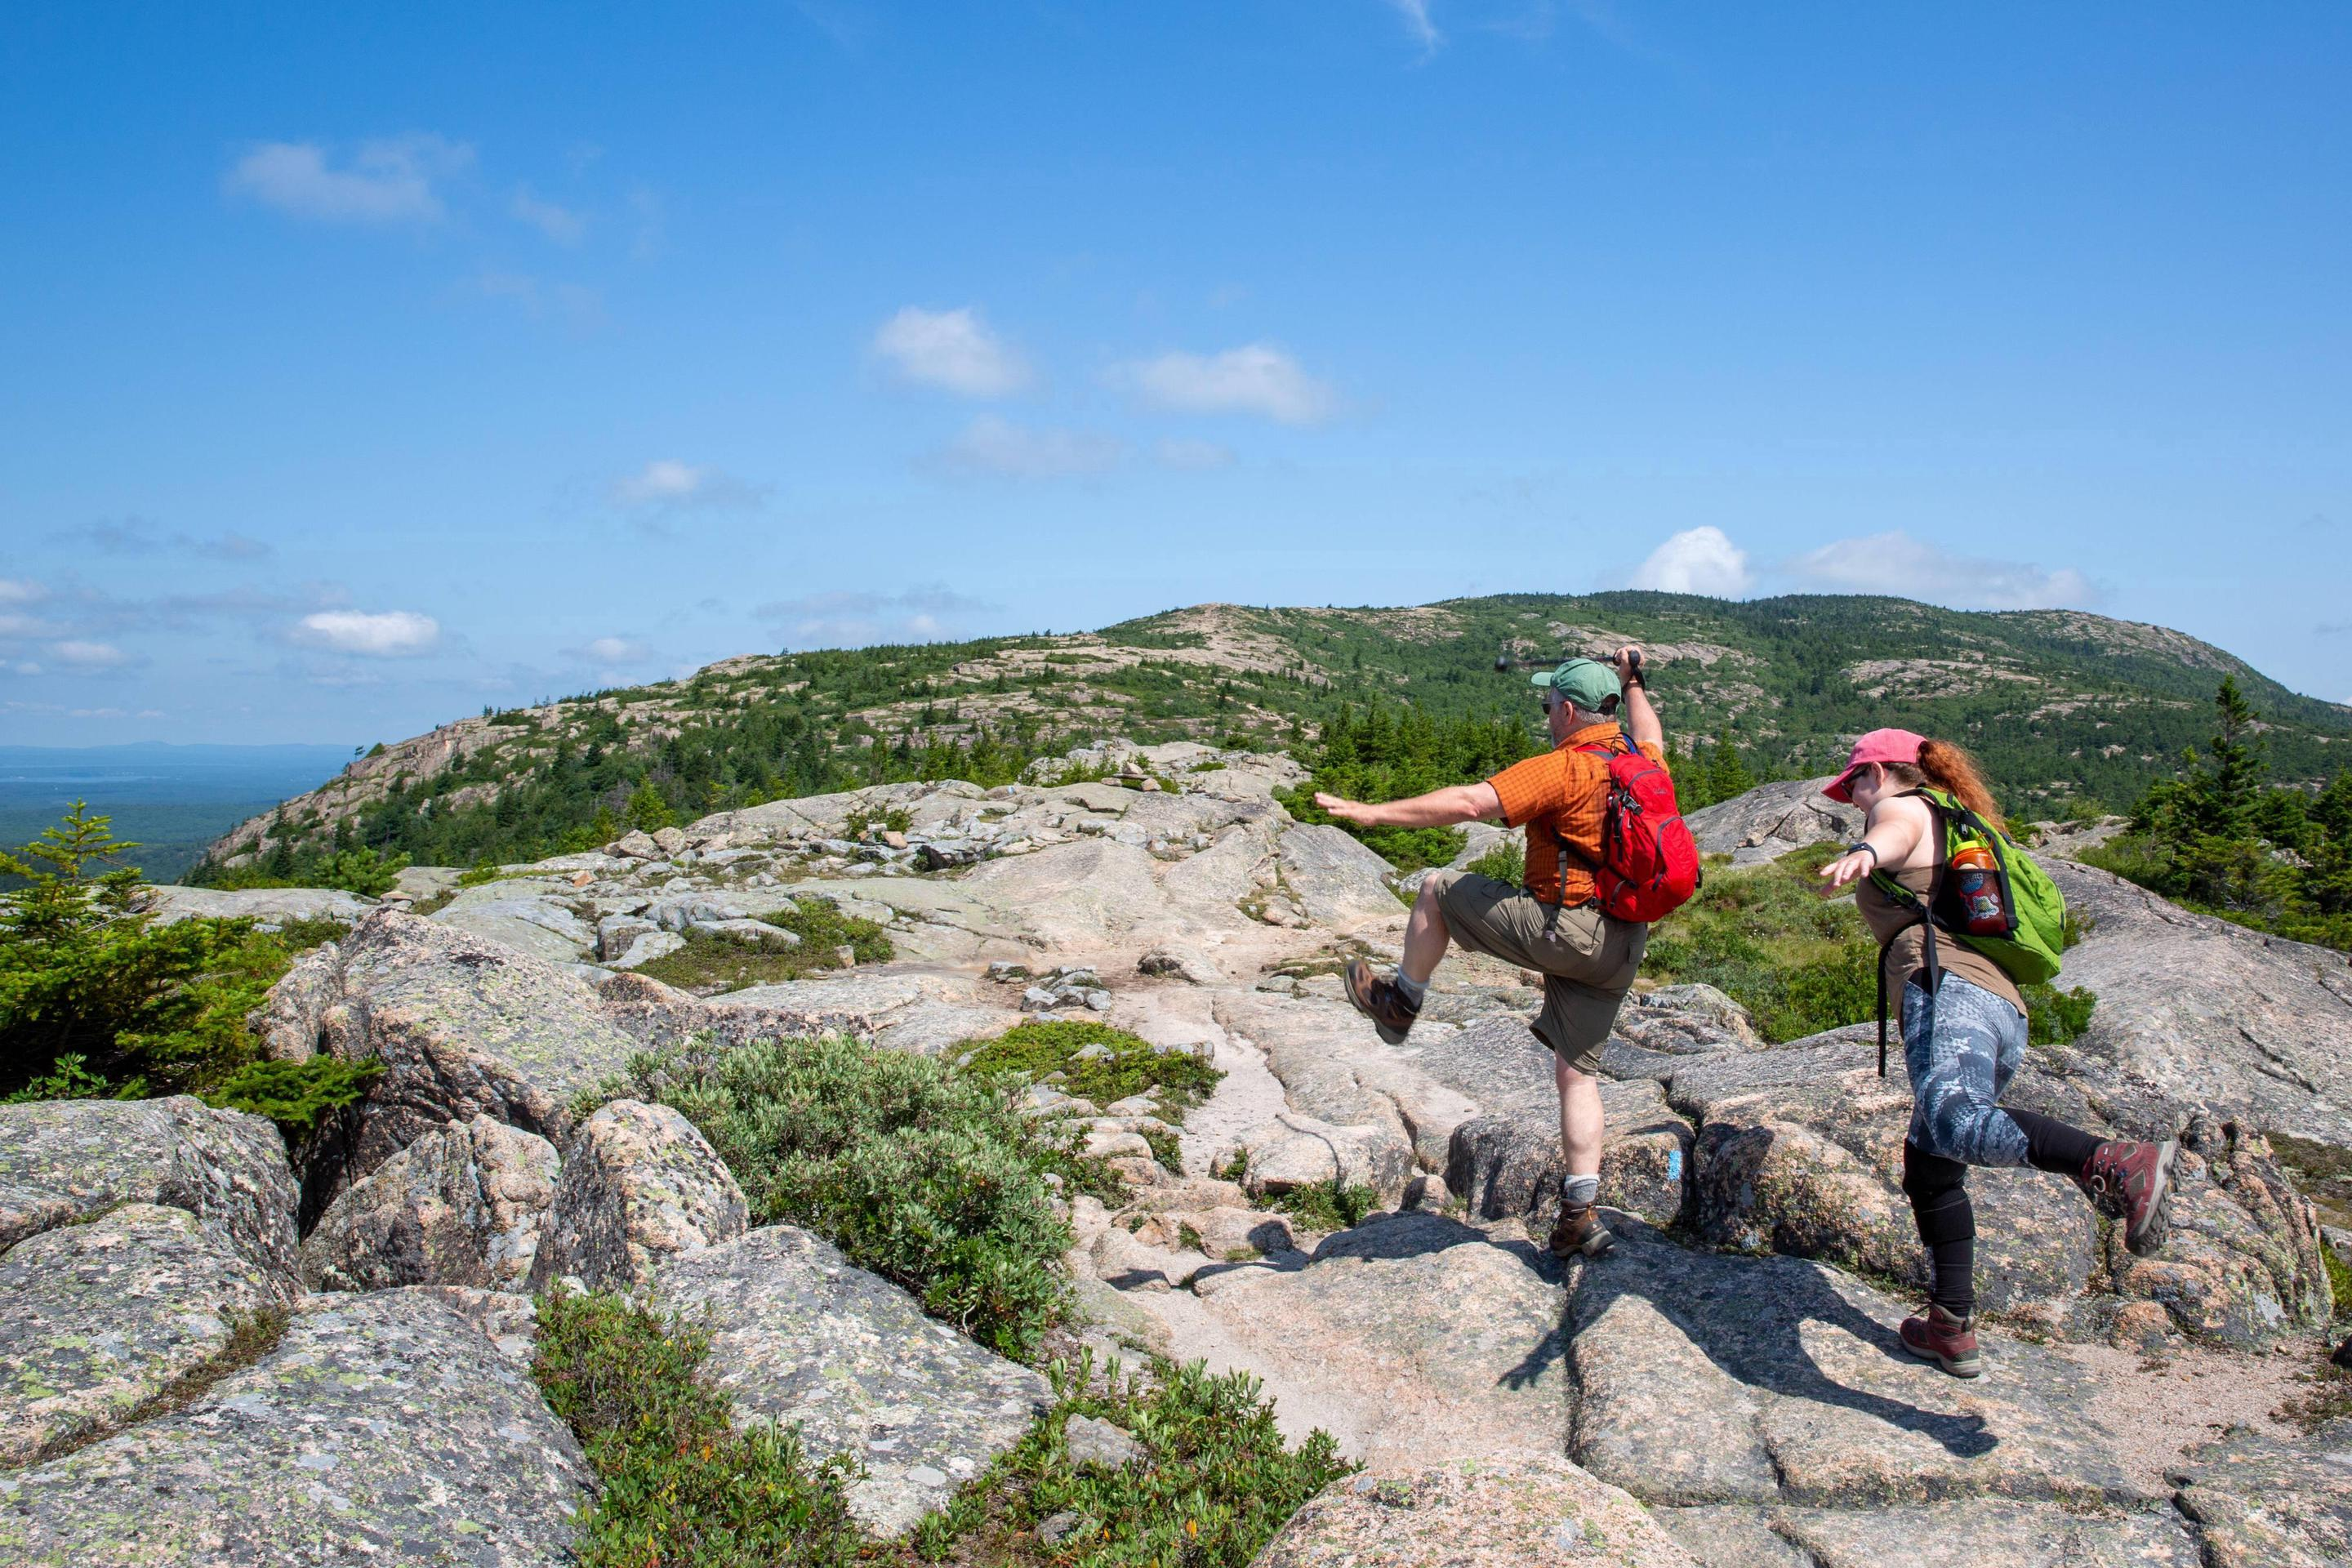 On an expansive rocky mountain top, two hikers wearing packs, boots, and ball caps gesture dramaticallyFather and daughter hikers clown along the Cadillac South Ridge Trail